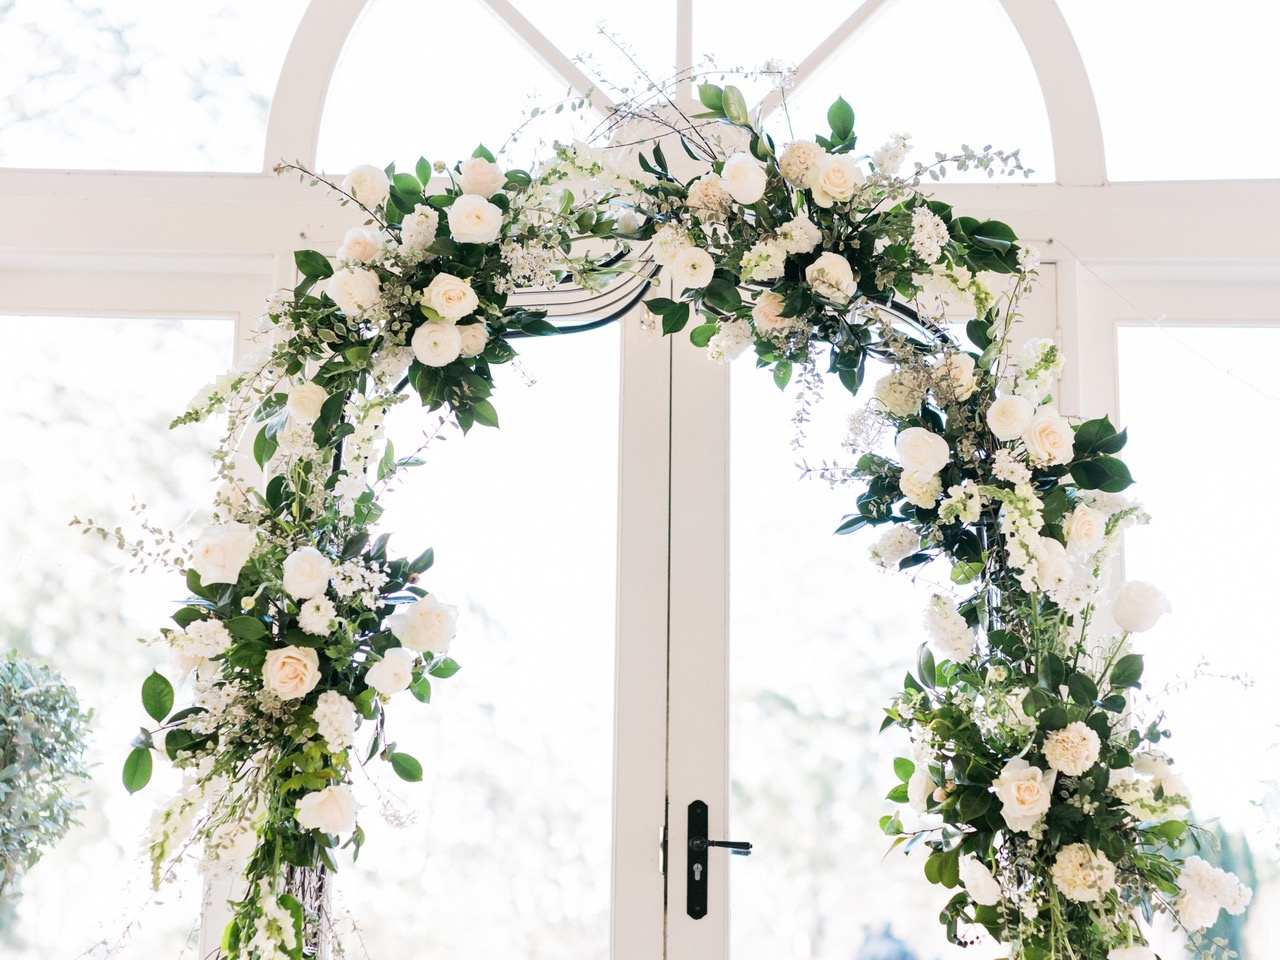 Studio Flora Co - Hopewood House - Rainy Day Weddings Shoot - Pavilion - Ballroom - Ceremony - Archway.jpg